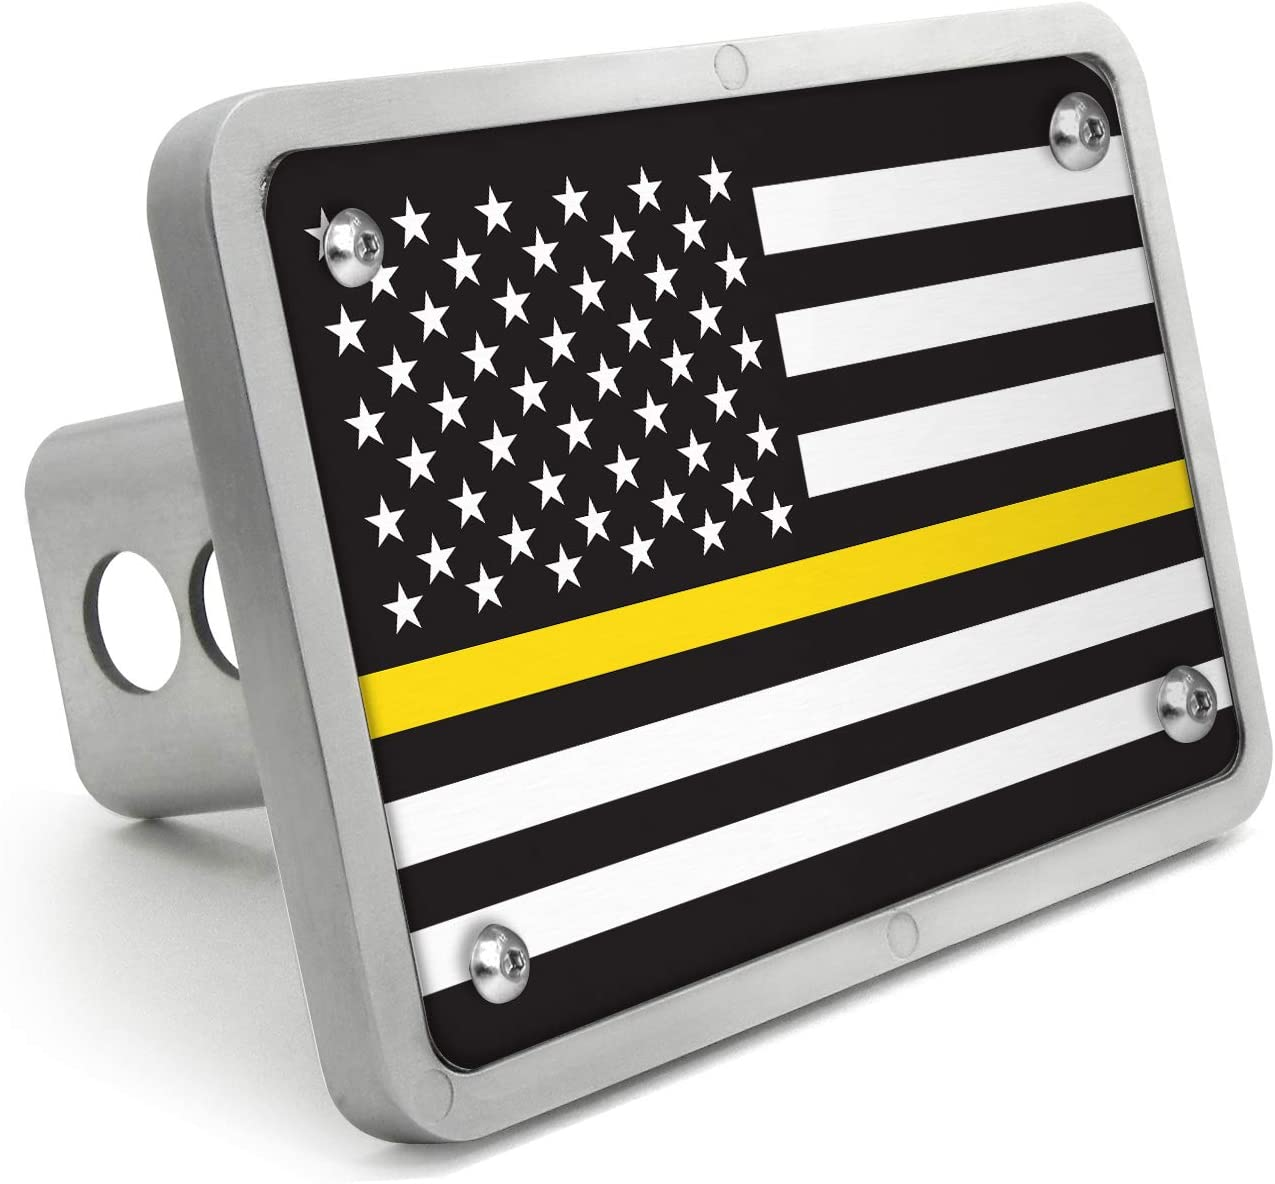 Firefighter Thin Red Line Flag Brushed Metal Hitch Cover